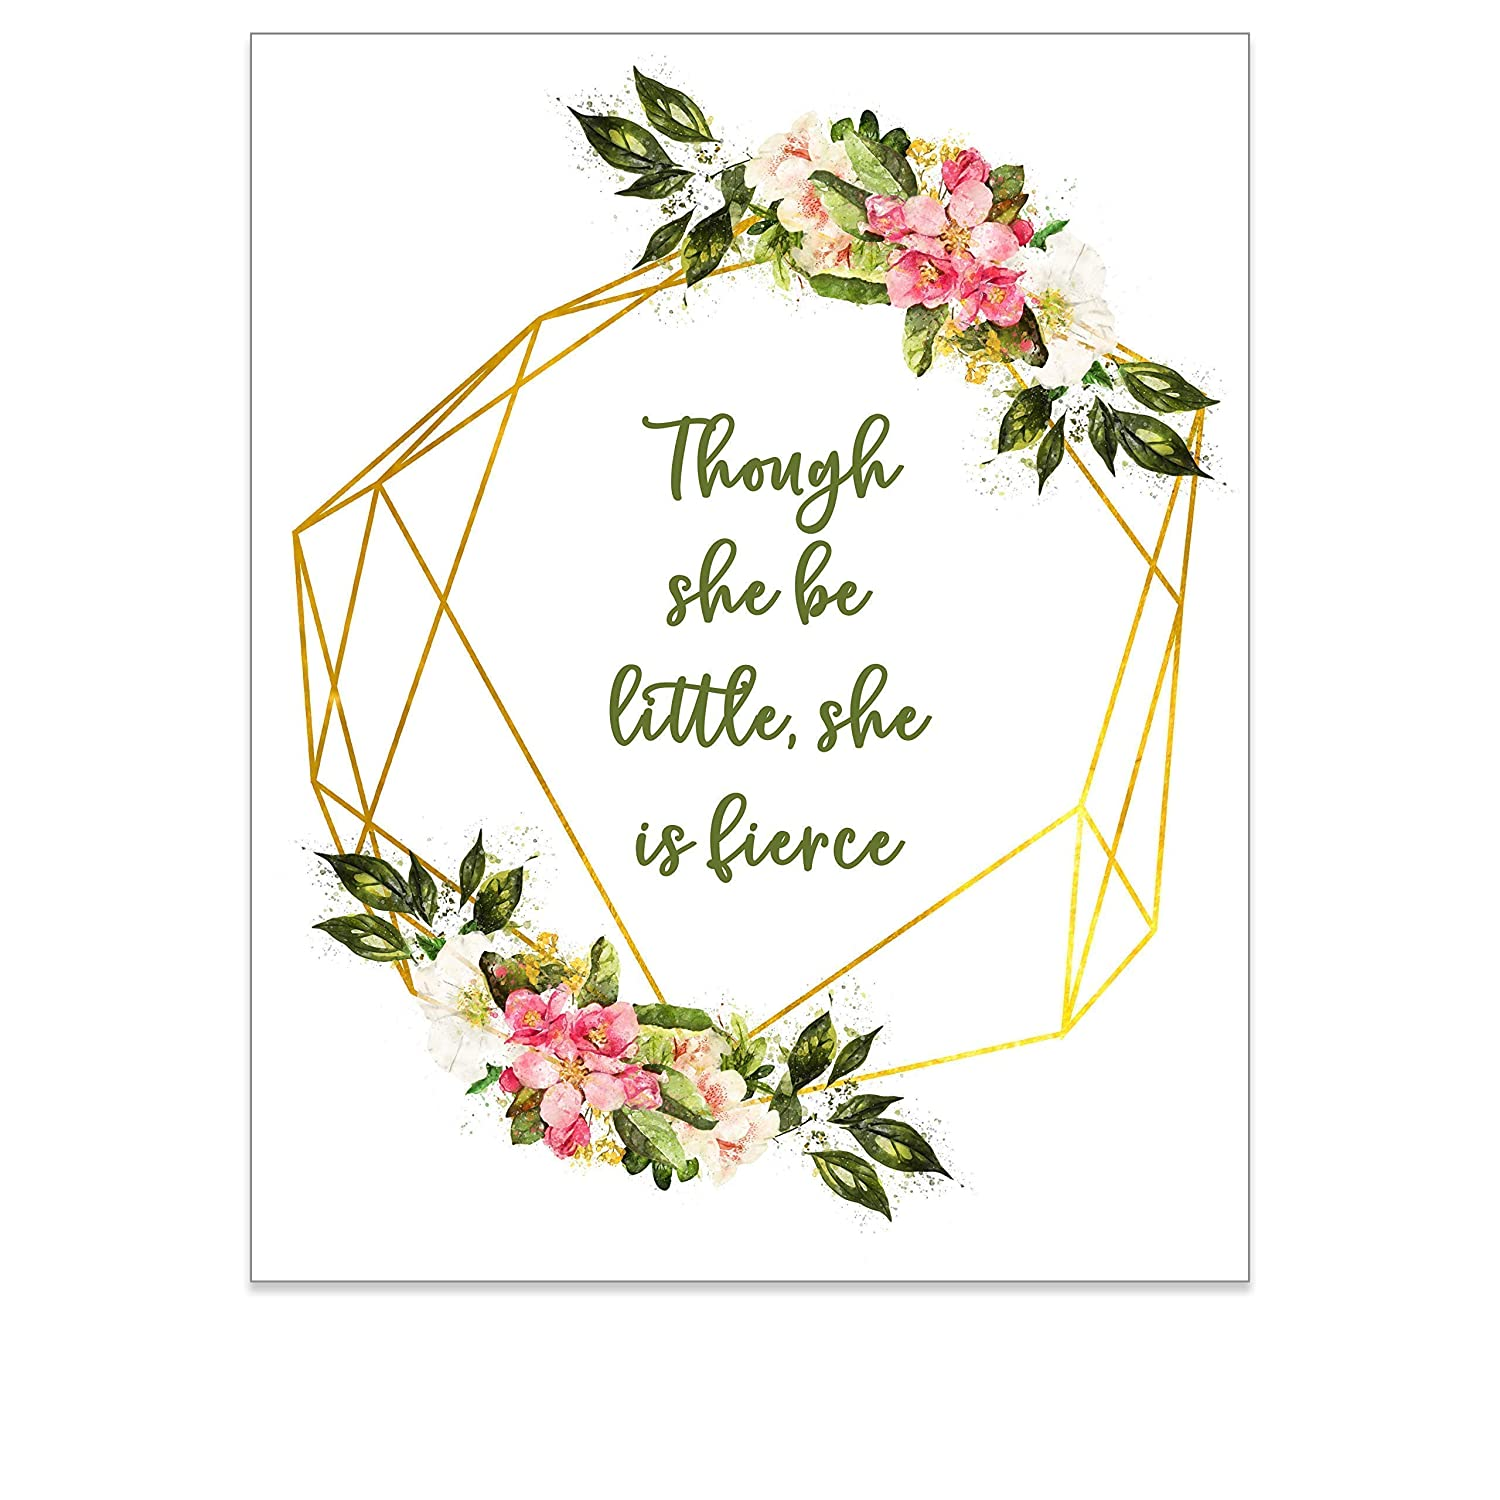 Wall Art for Girls Bedroom - Though She Be Little Floral Print - Inspirational Quote Wall Decor for Strong Girls Room - Nursery Artwork - Shabby Chic Teen Boho Motivational Poster - 8x10 UNFRAMED